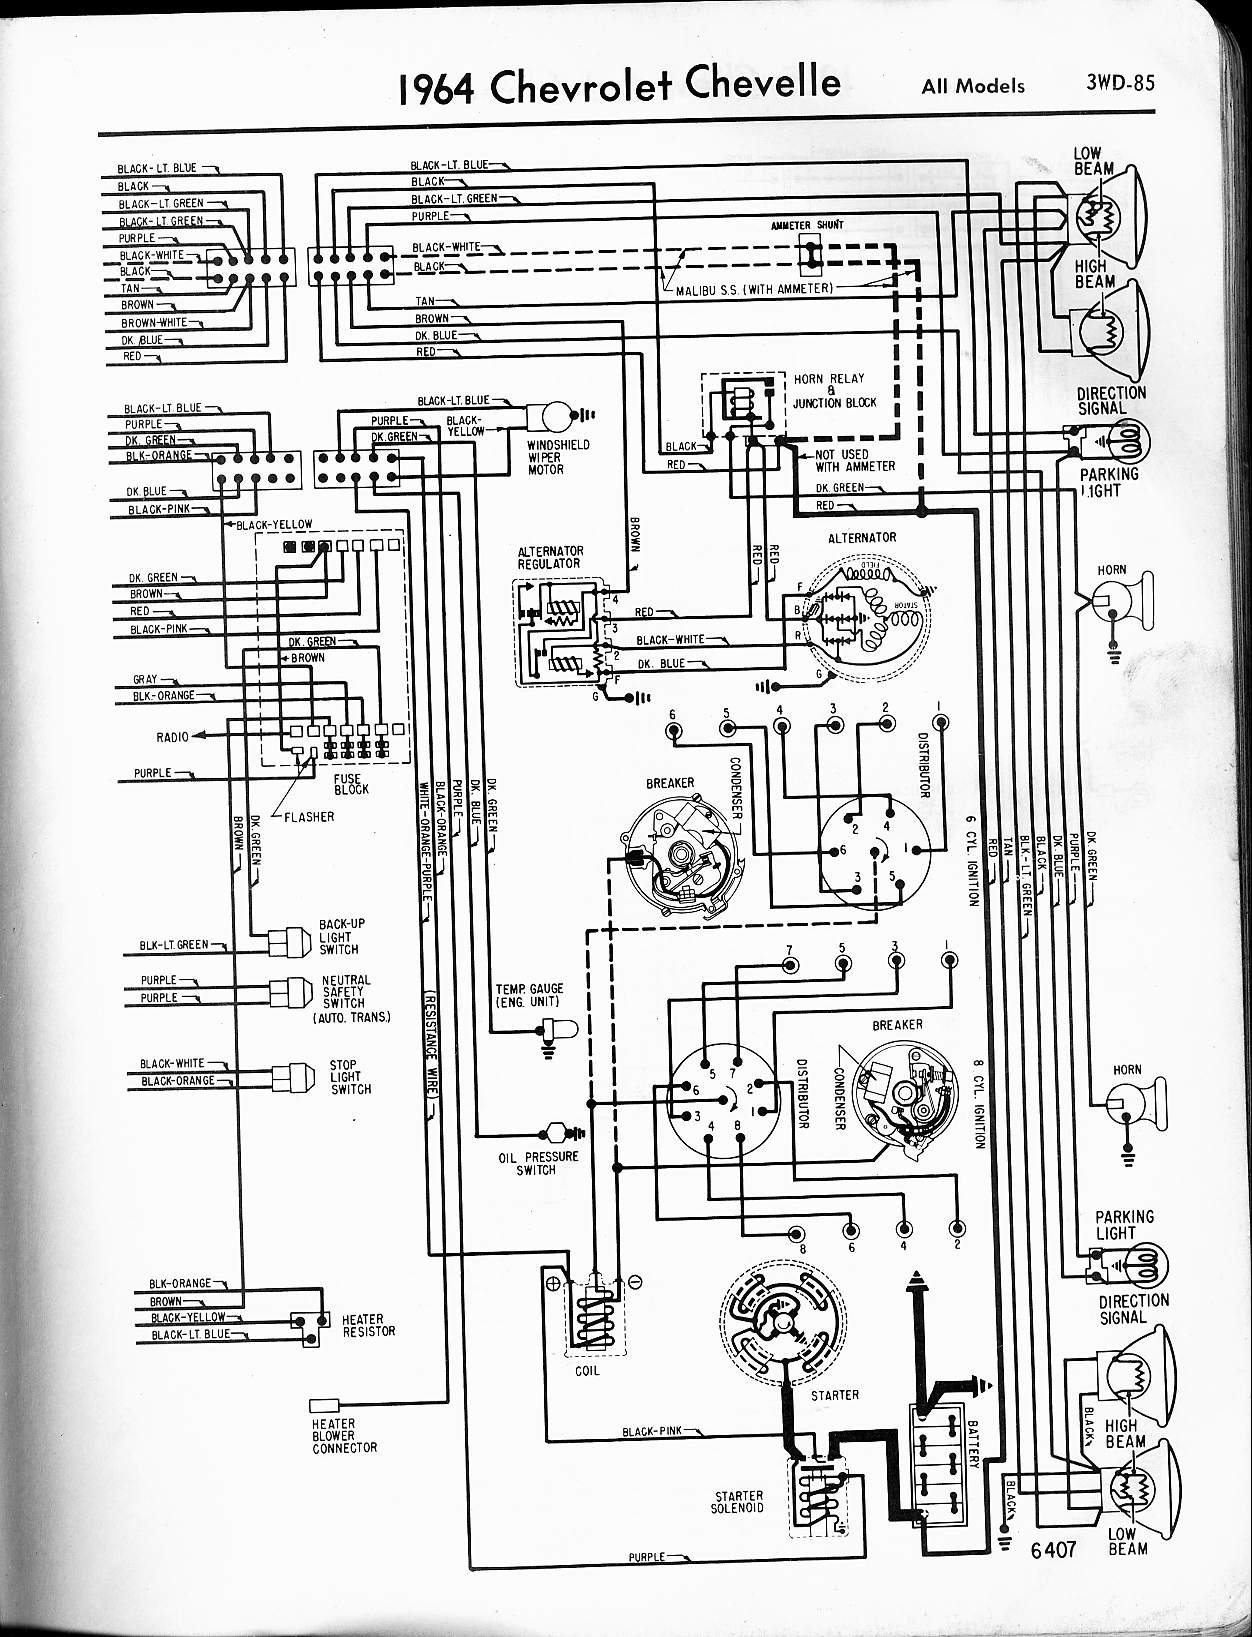 MWireChev64_3WD 085 chevy diagrams 1969 chevelle wiring diagram at cos-gaming.co